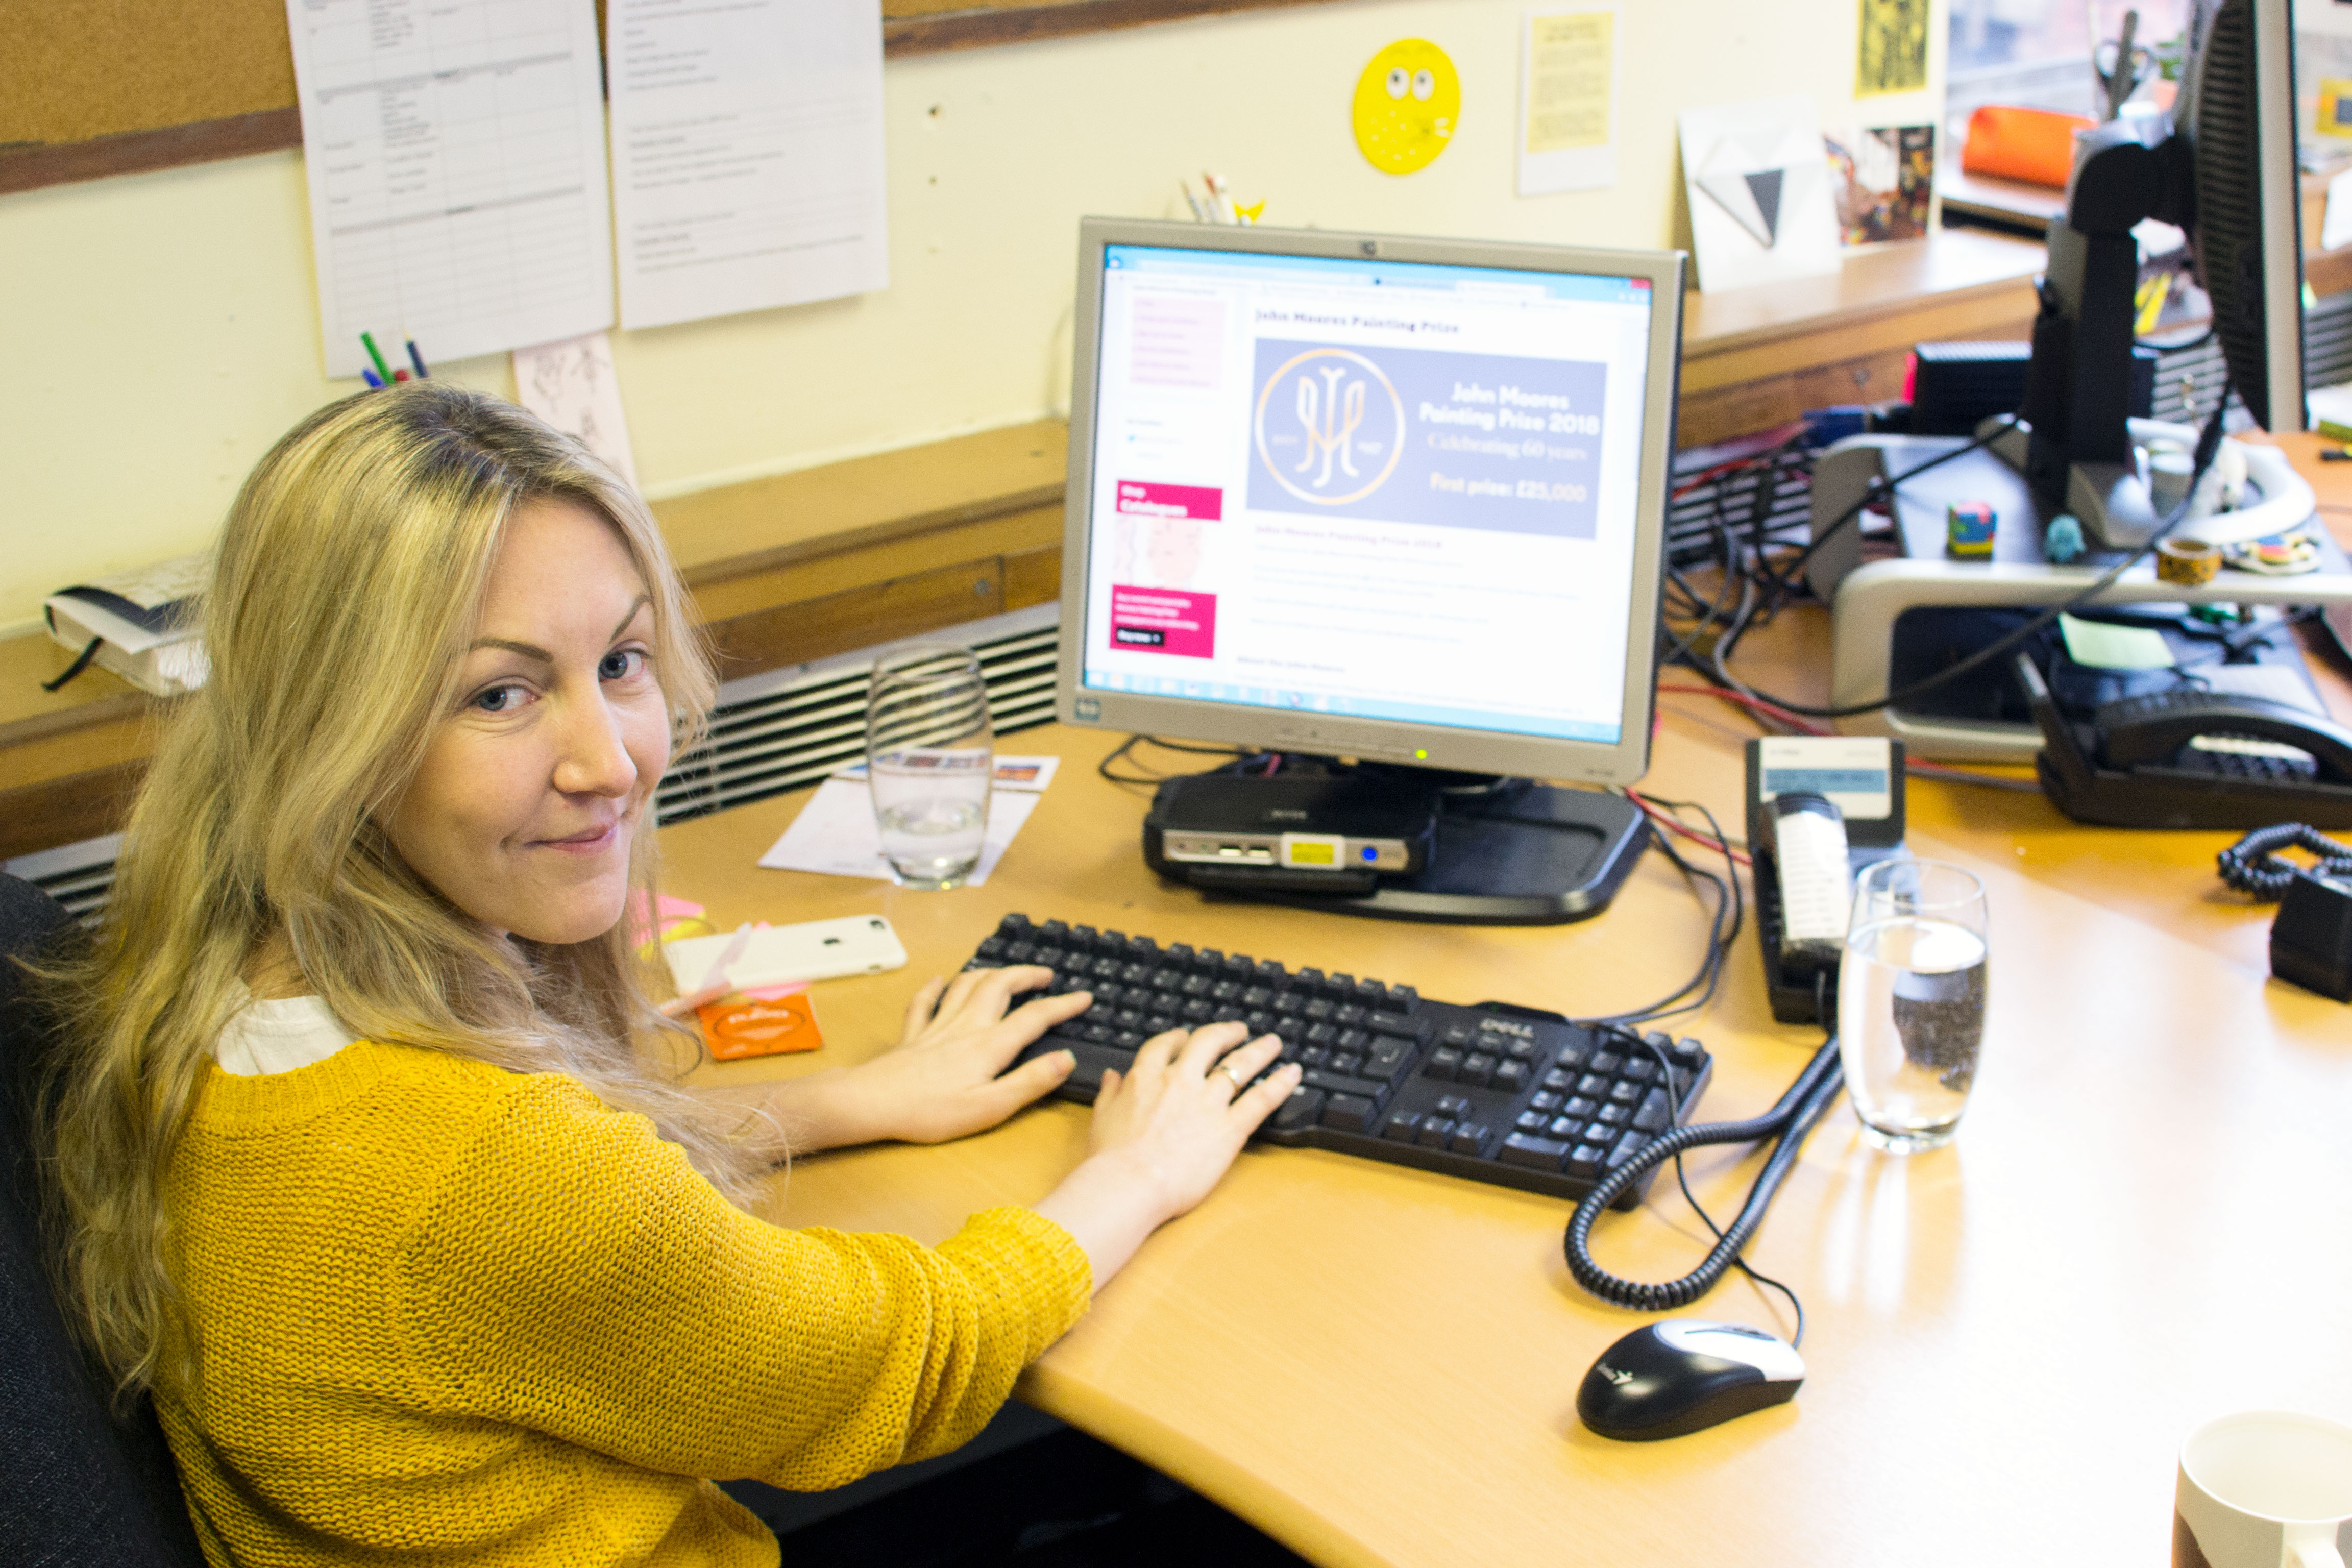 Alex Patterson at her desk working